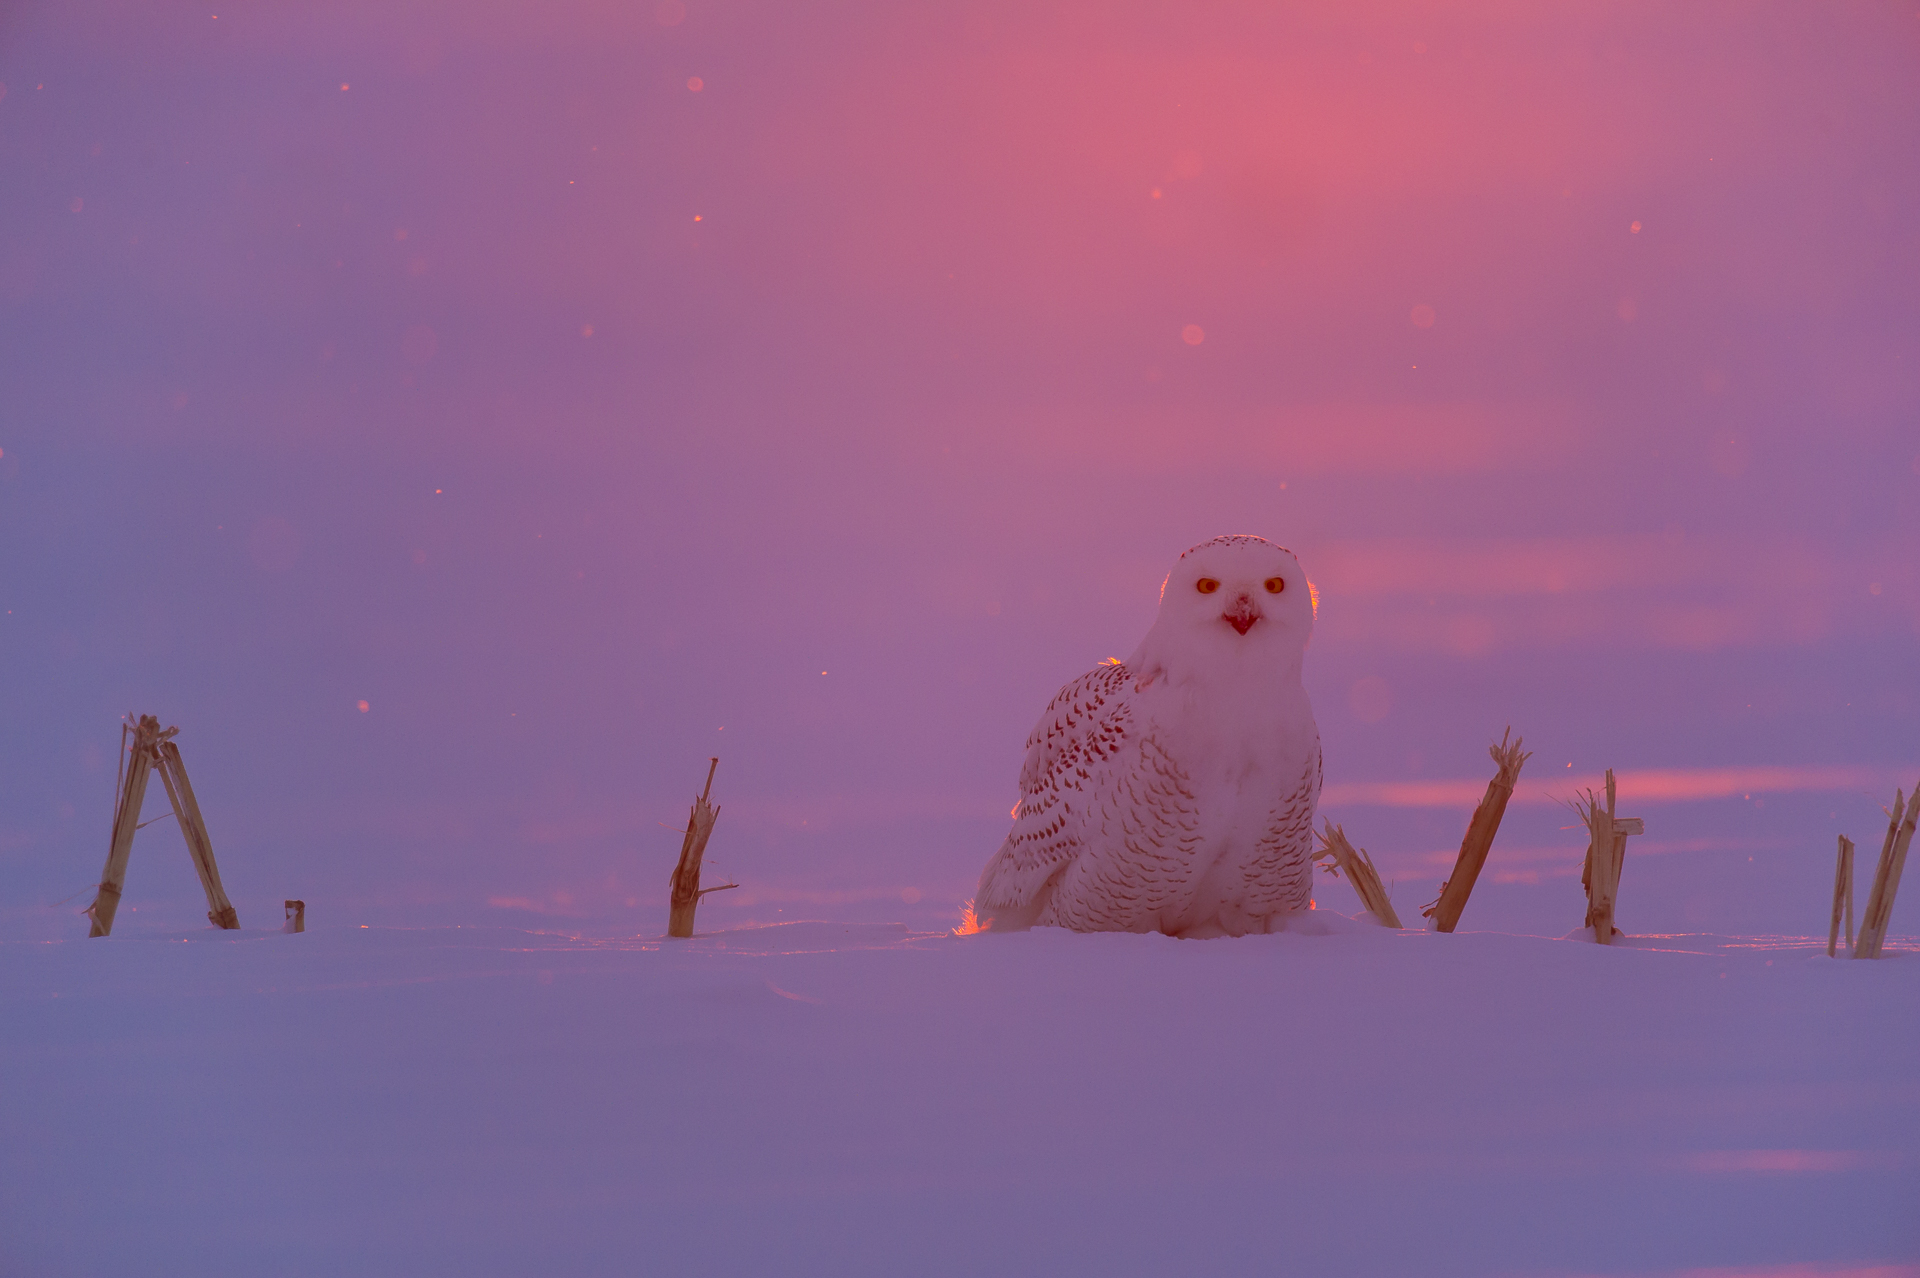 Last light: snowy owl